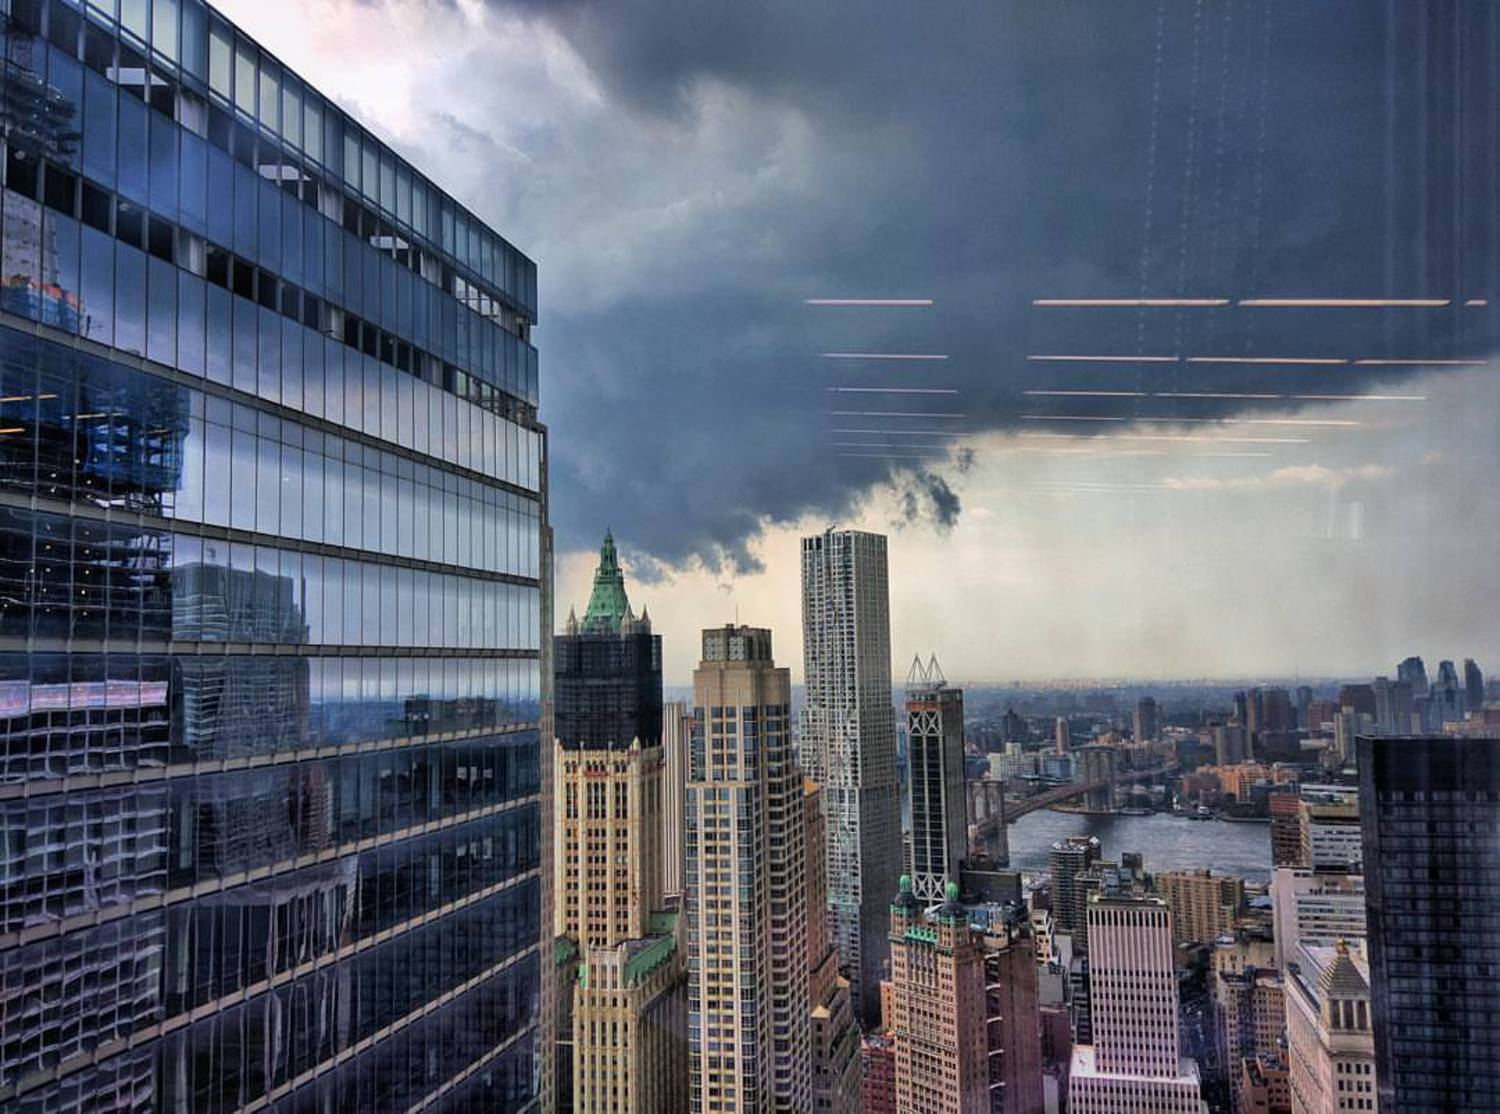 The storm encroaches.  #nyc #storm #rain #wtc #cl#cloudporn